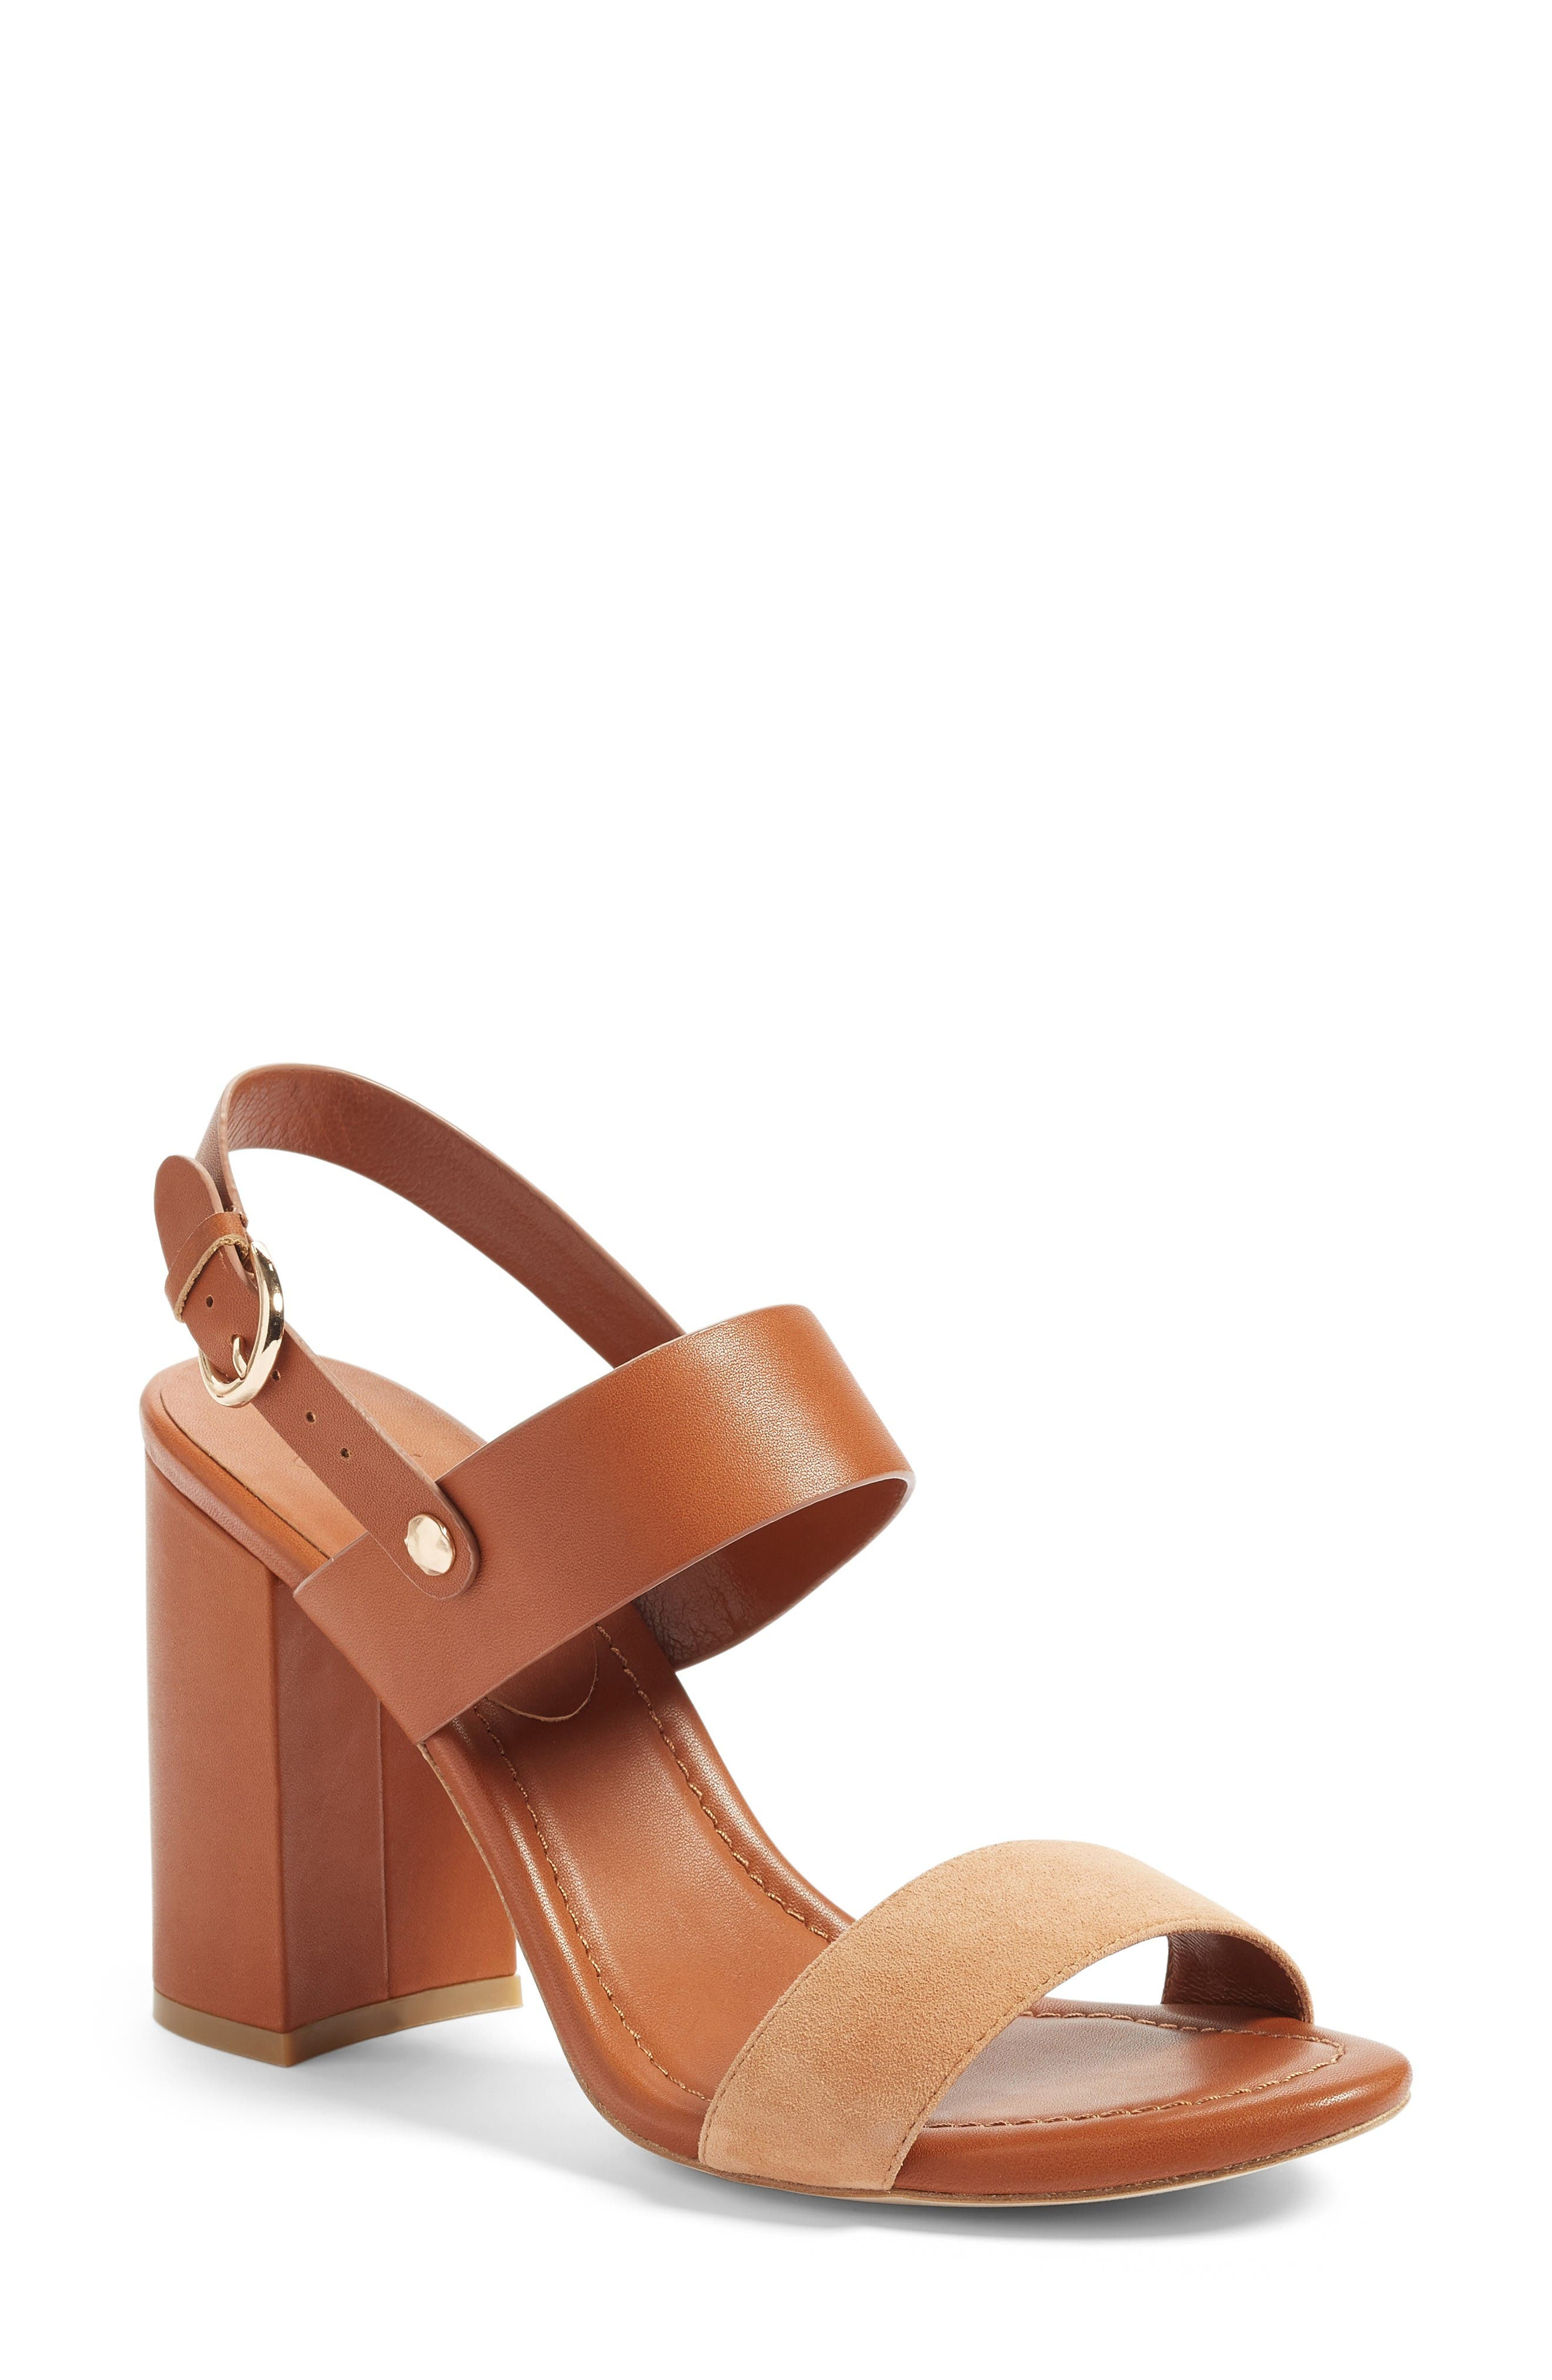 Alternate Image 1 Selected - Joie Lakin Slingback Sandal (Women)